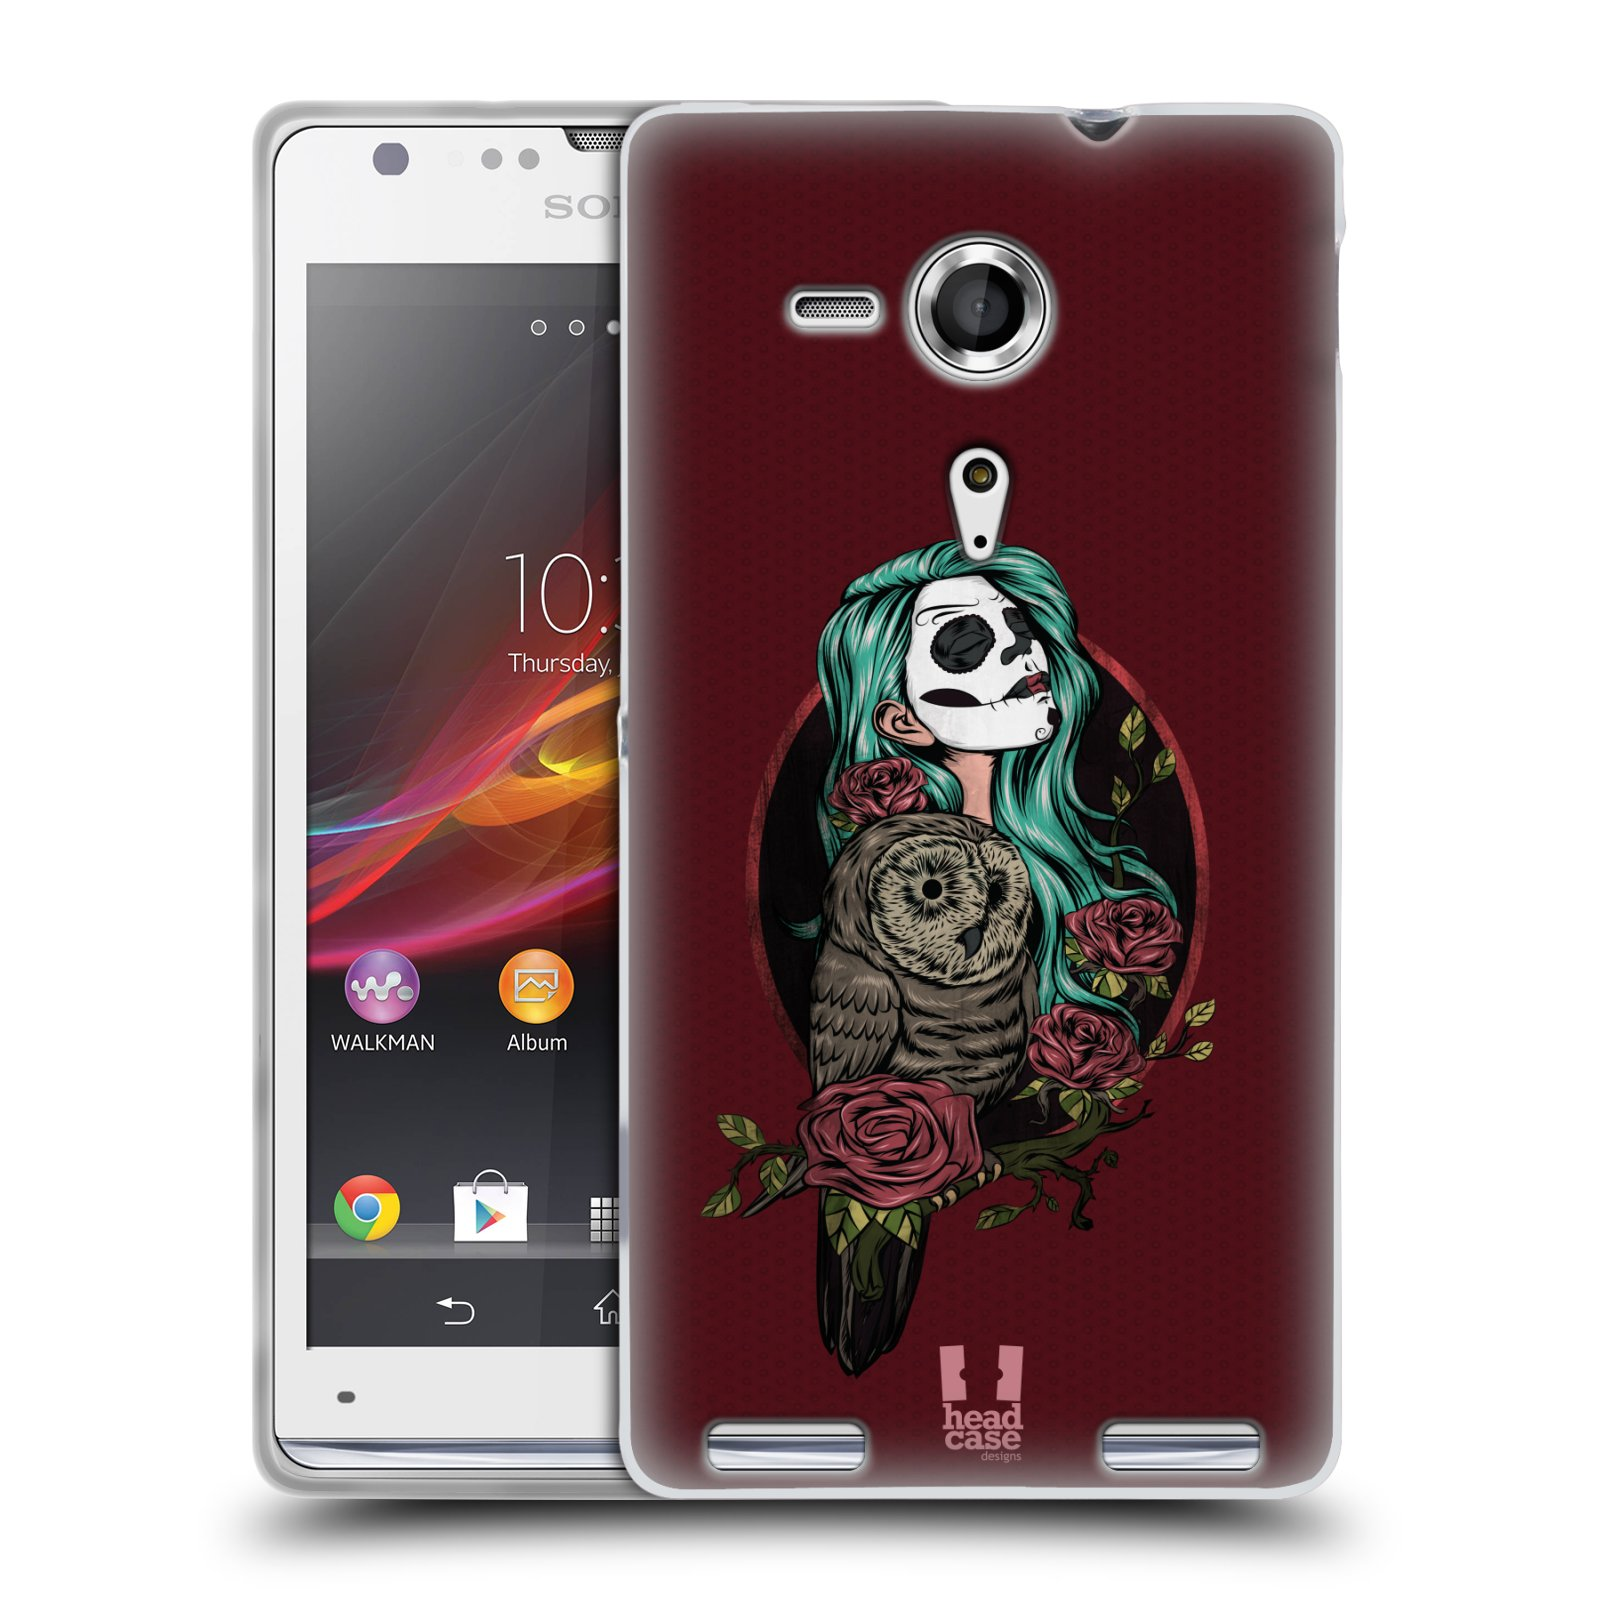 HEAD CASE GIRLS OF OWLS SILICONE GEL CASE FOR SONY XPERIA SP C5303